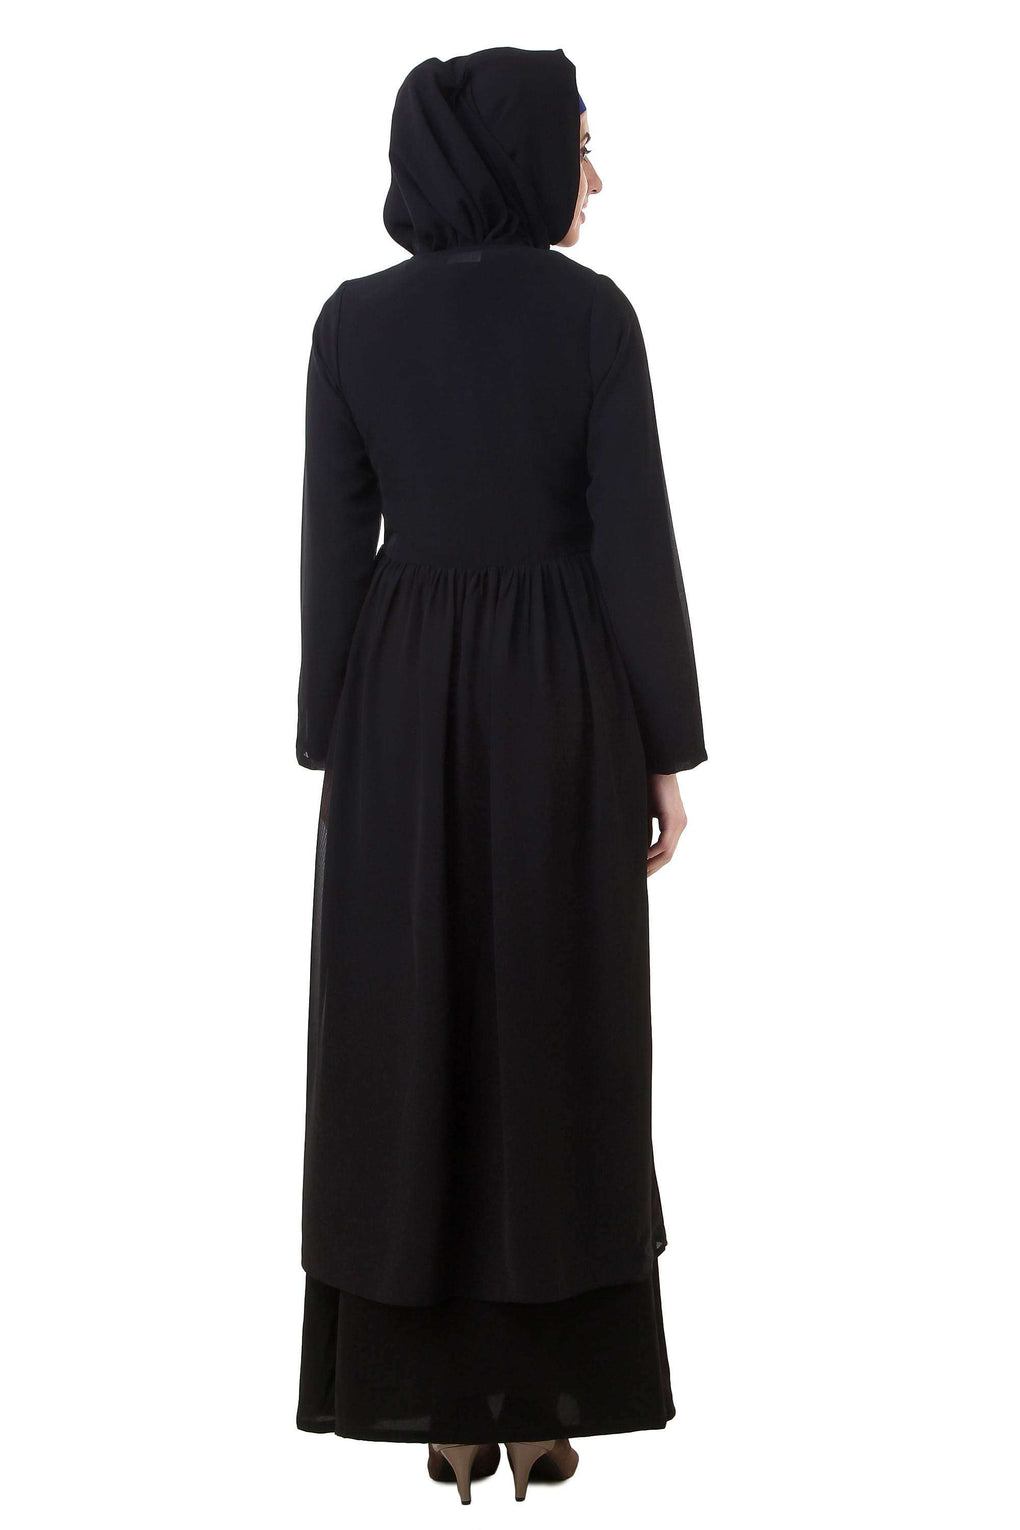 Black Nida and Georgette Abaya AY-710